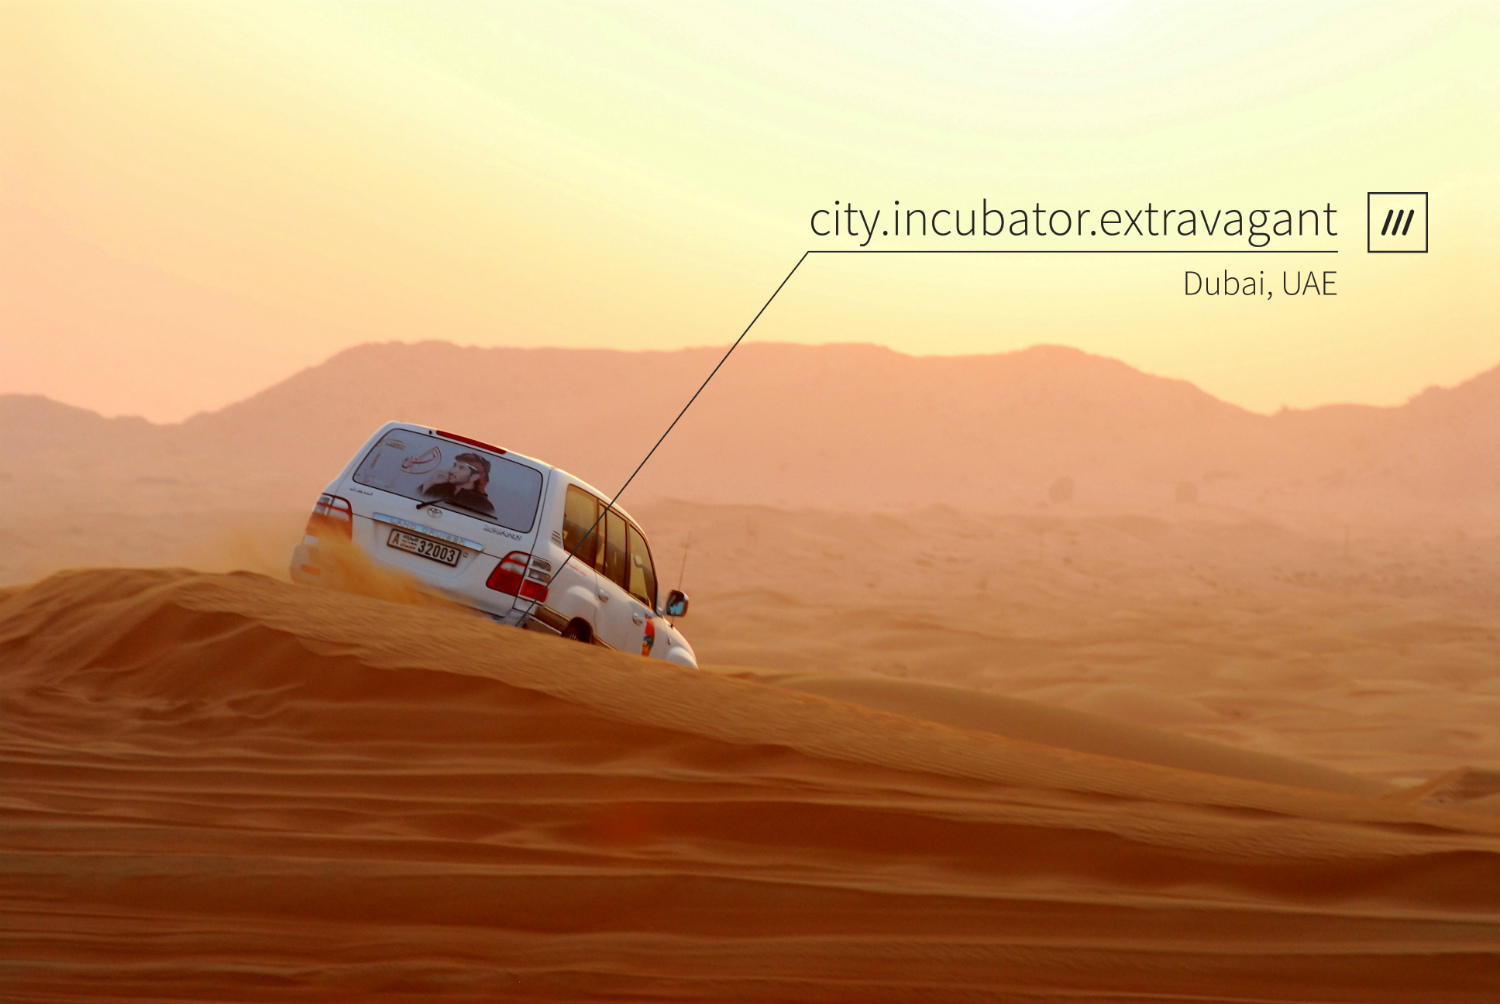 car driving down sand dunes in the hot desert at 3 word address city.incubator.extravagant